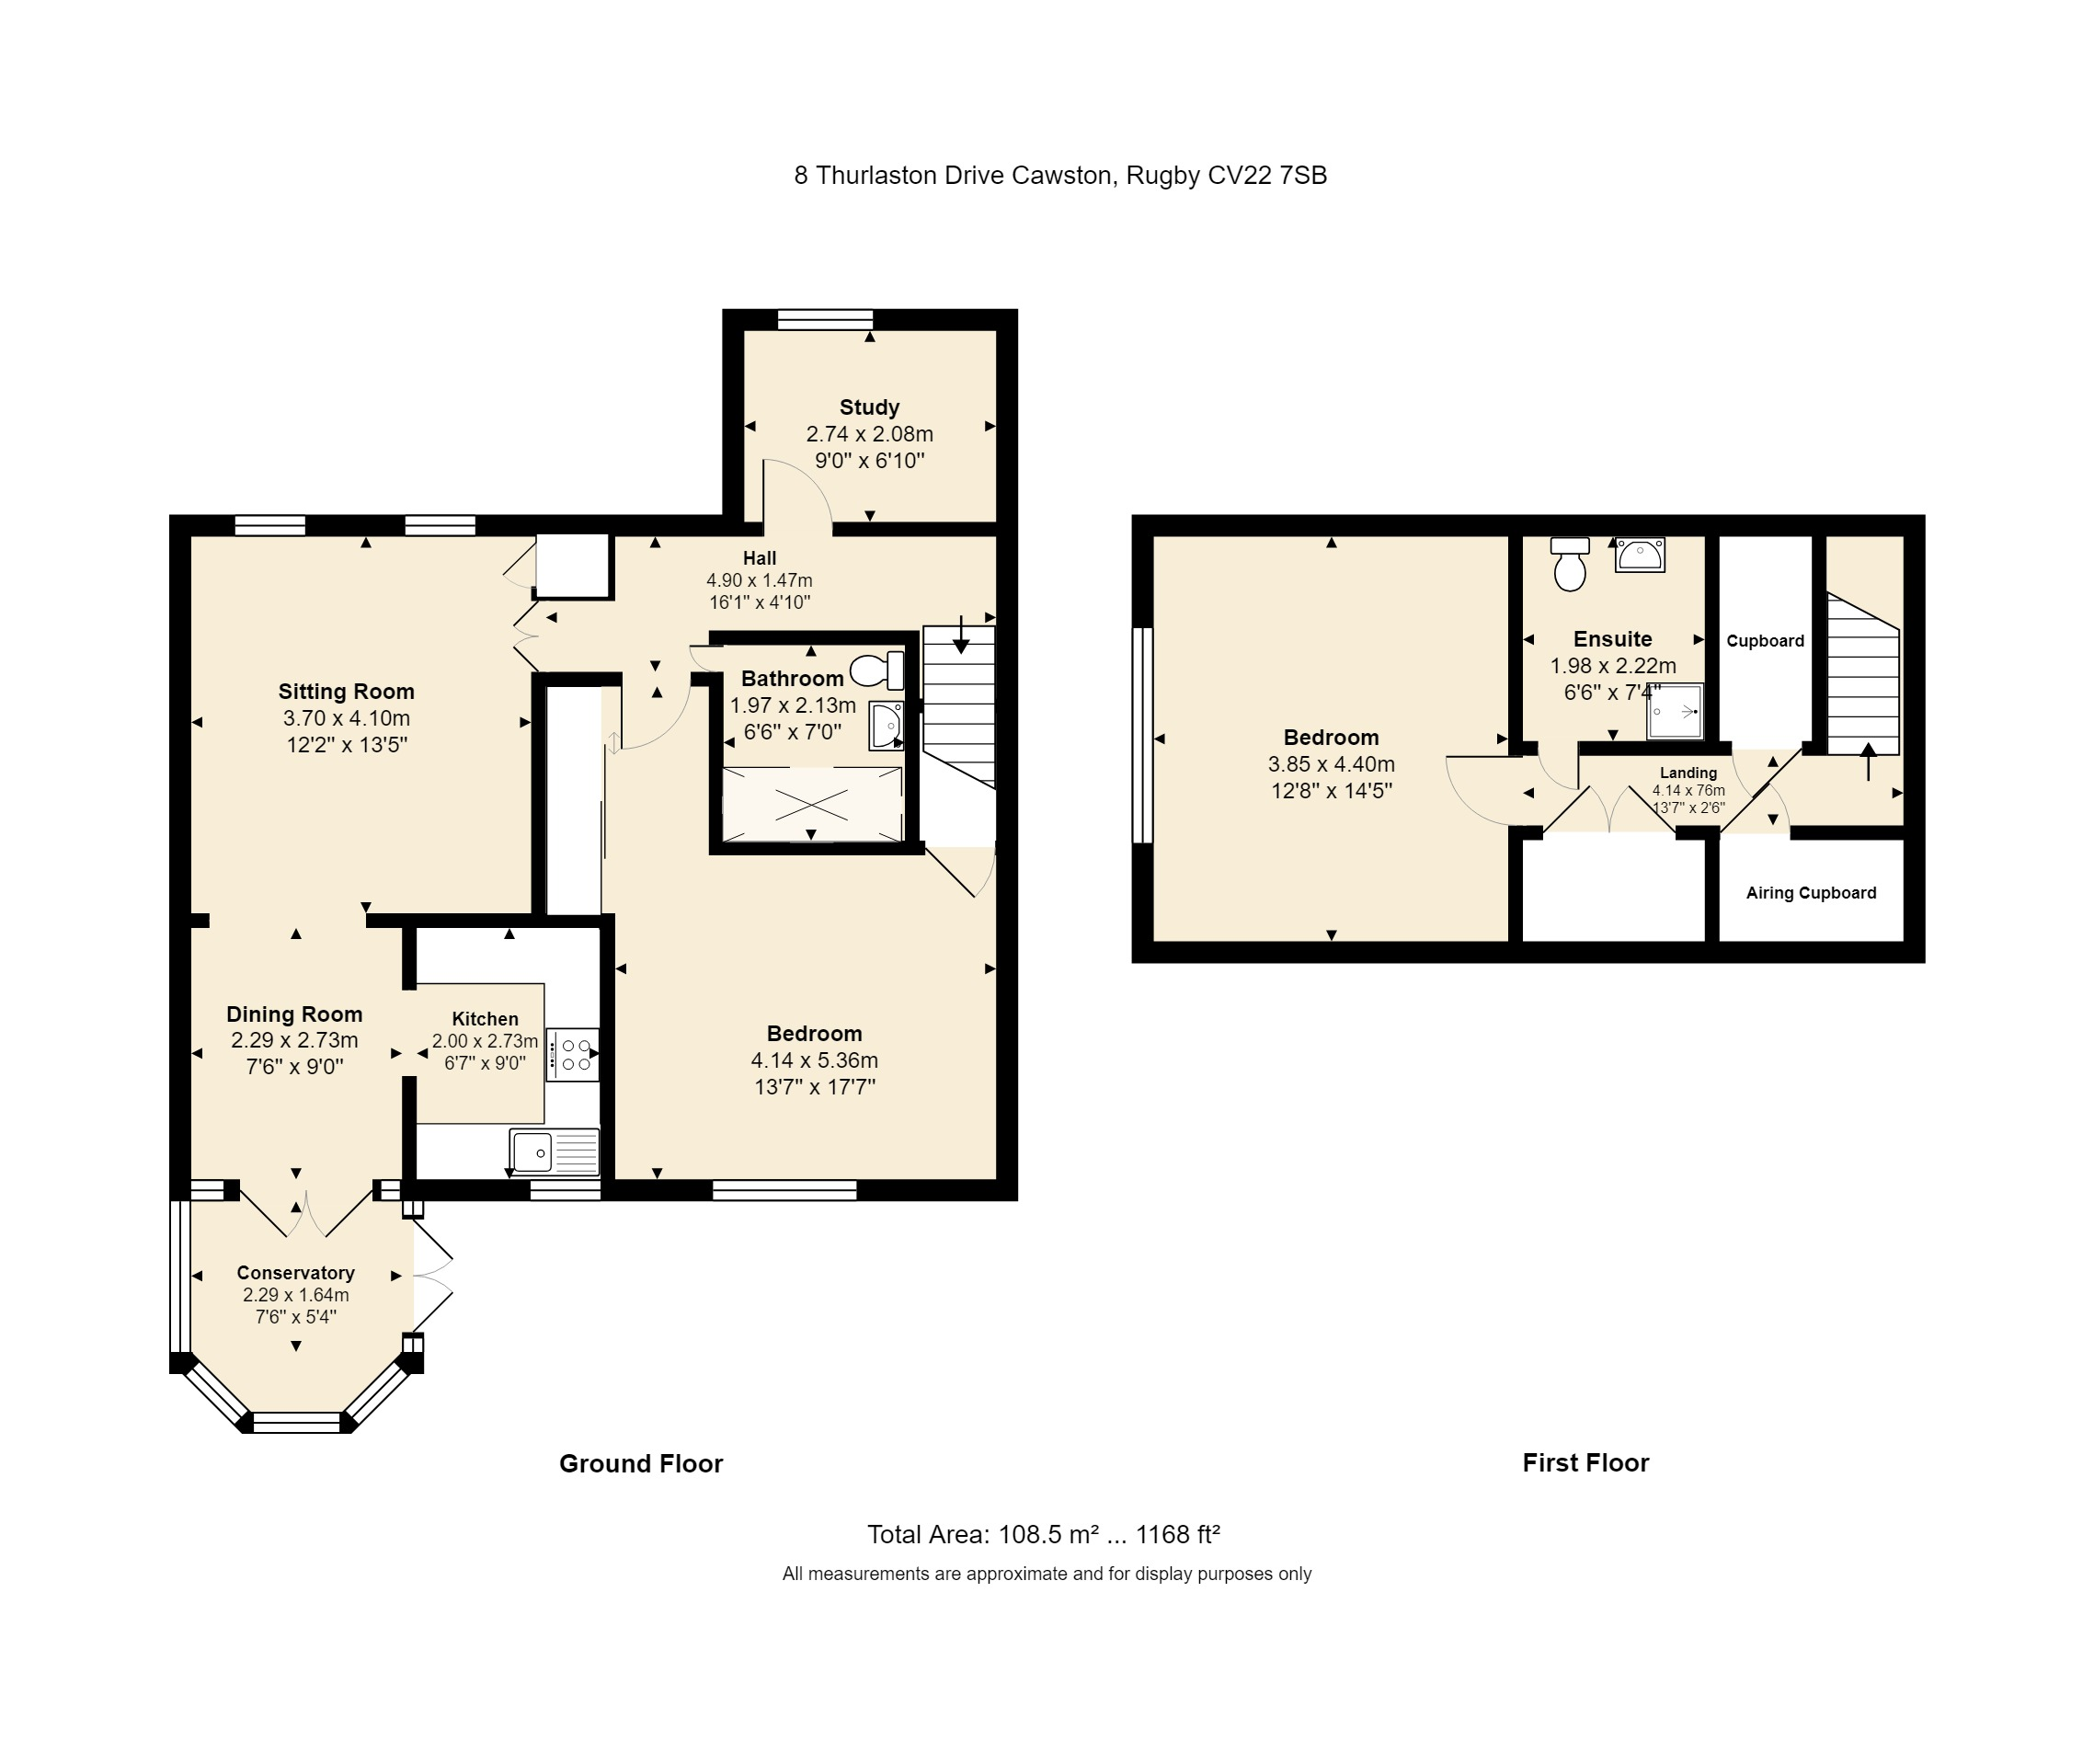 8 Thurlaston Drive Floorplan